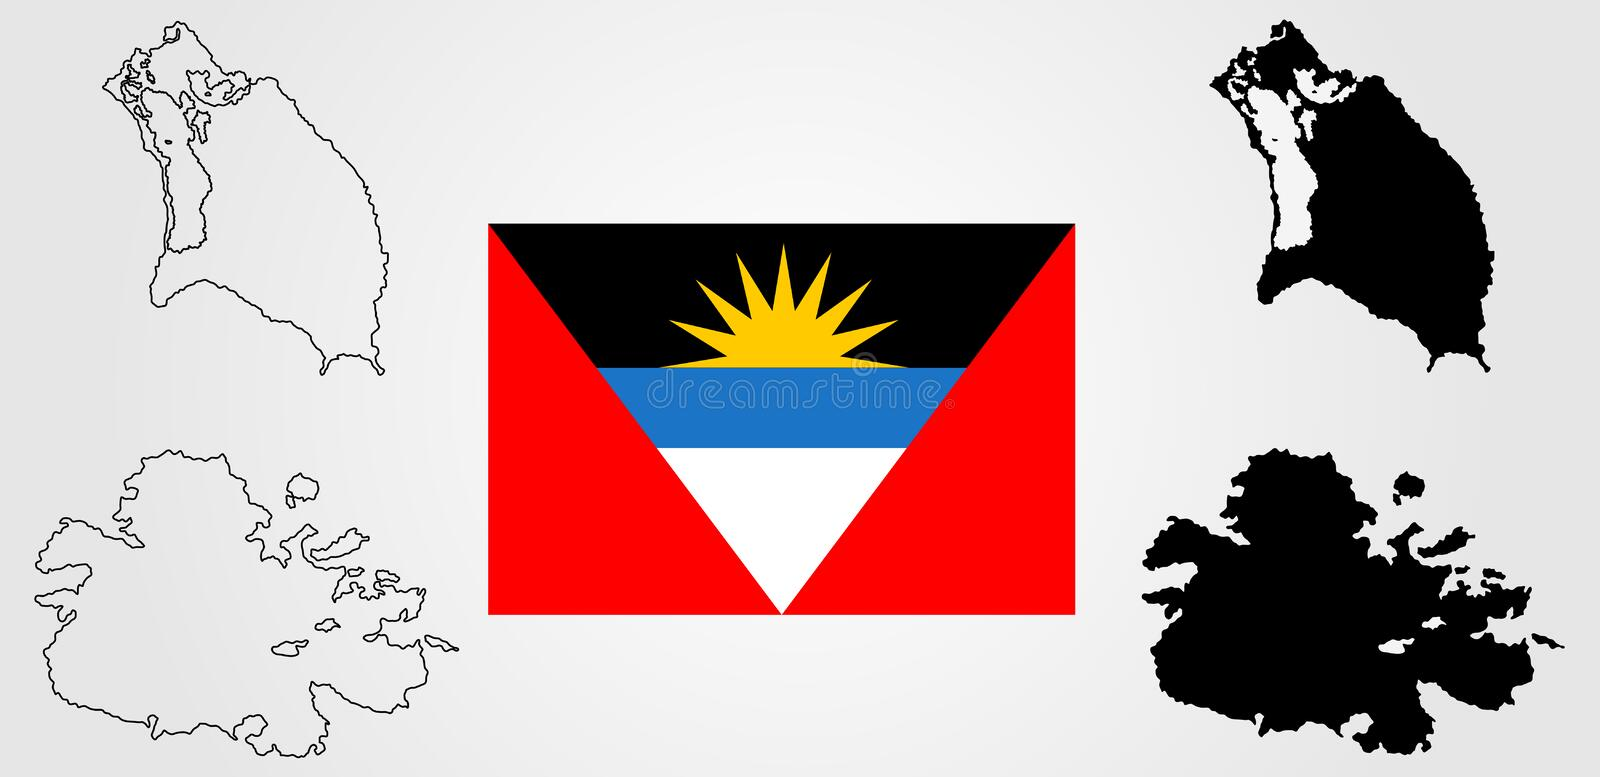 Silhouette de carte de vecteur de l'Antigua-et-Barbuda et drapeau de vecteur illustration libre de droits